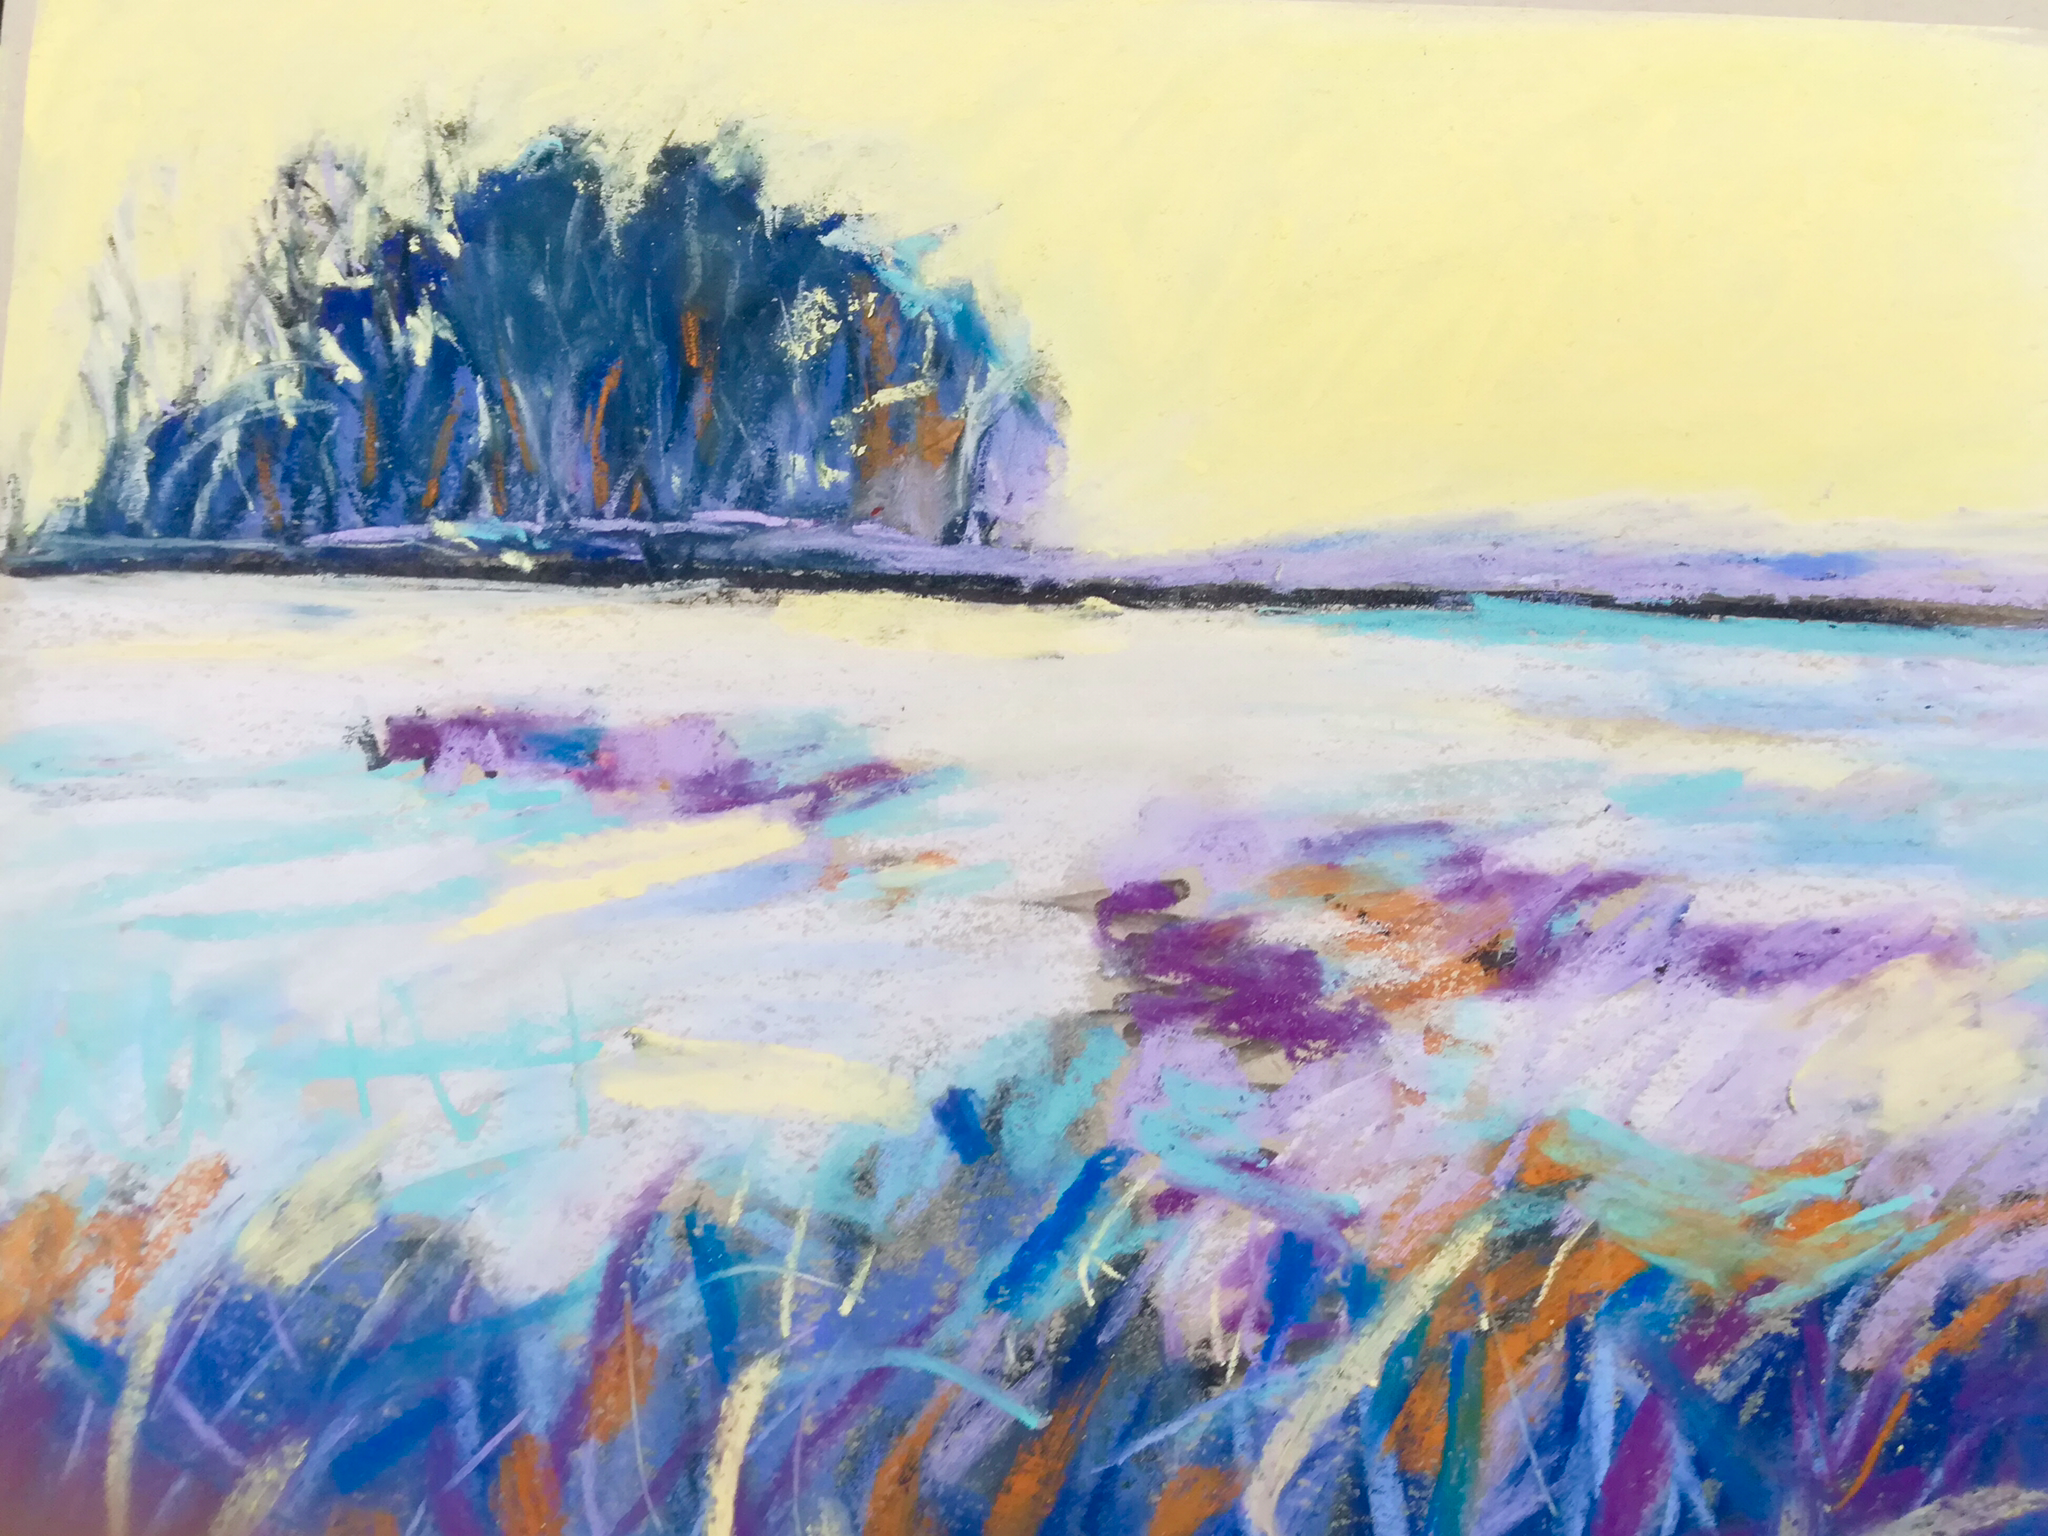 Frosty Field - NEWMedium/Materials used: Soft Pastels on Canson Mi-Teintes paper.Measurements (framed): 36cm x 48cmMeasurements (Unframed): 30cm x 42cm